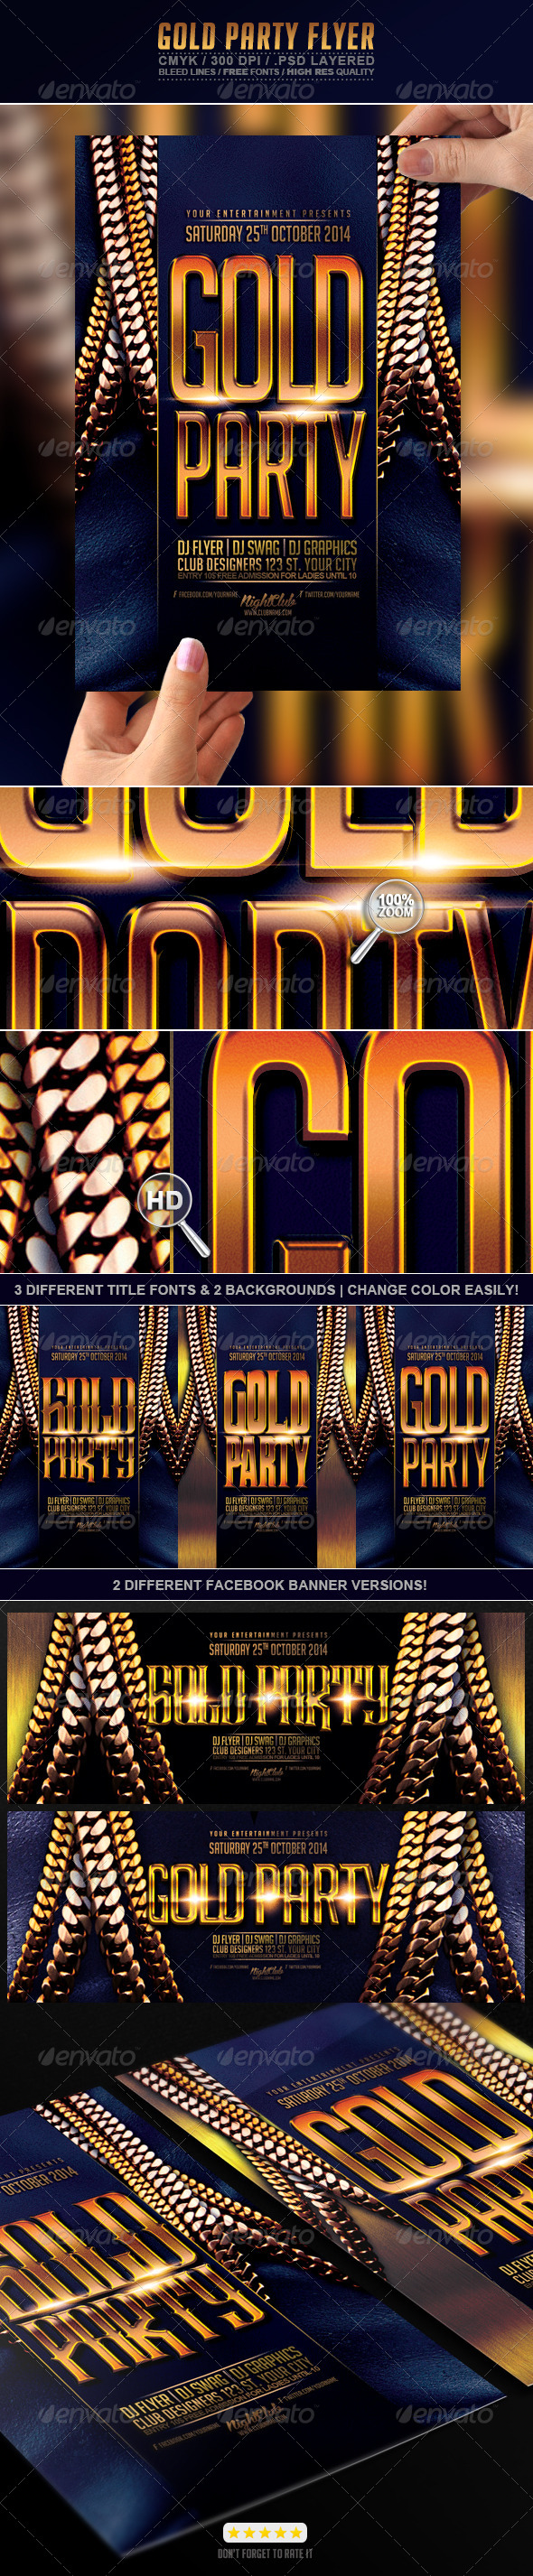 GraphicRiver Gold Party Flyer 7725067